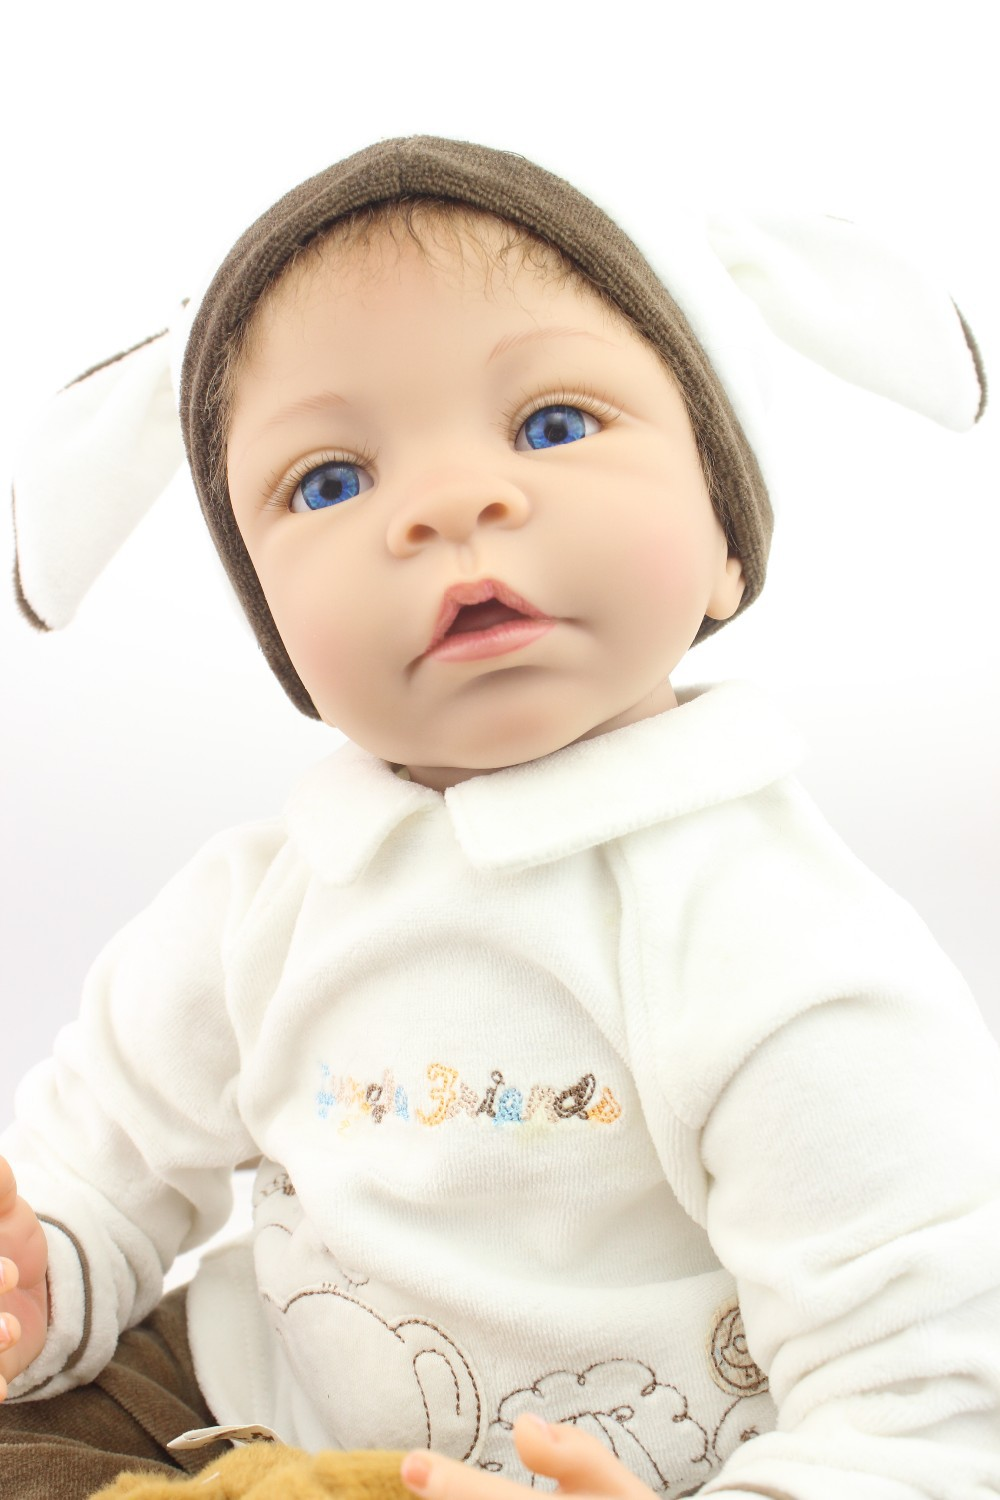 55cm Soft silicone reborn baby dolls toy for child girls kids birthday gift present collectable doll play house toy boy babies 55cm silicone reborn baby dolls toy fot girls kids birthday gift present newborn girl babies princess dolls collectable doll